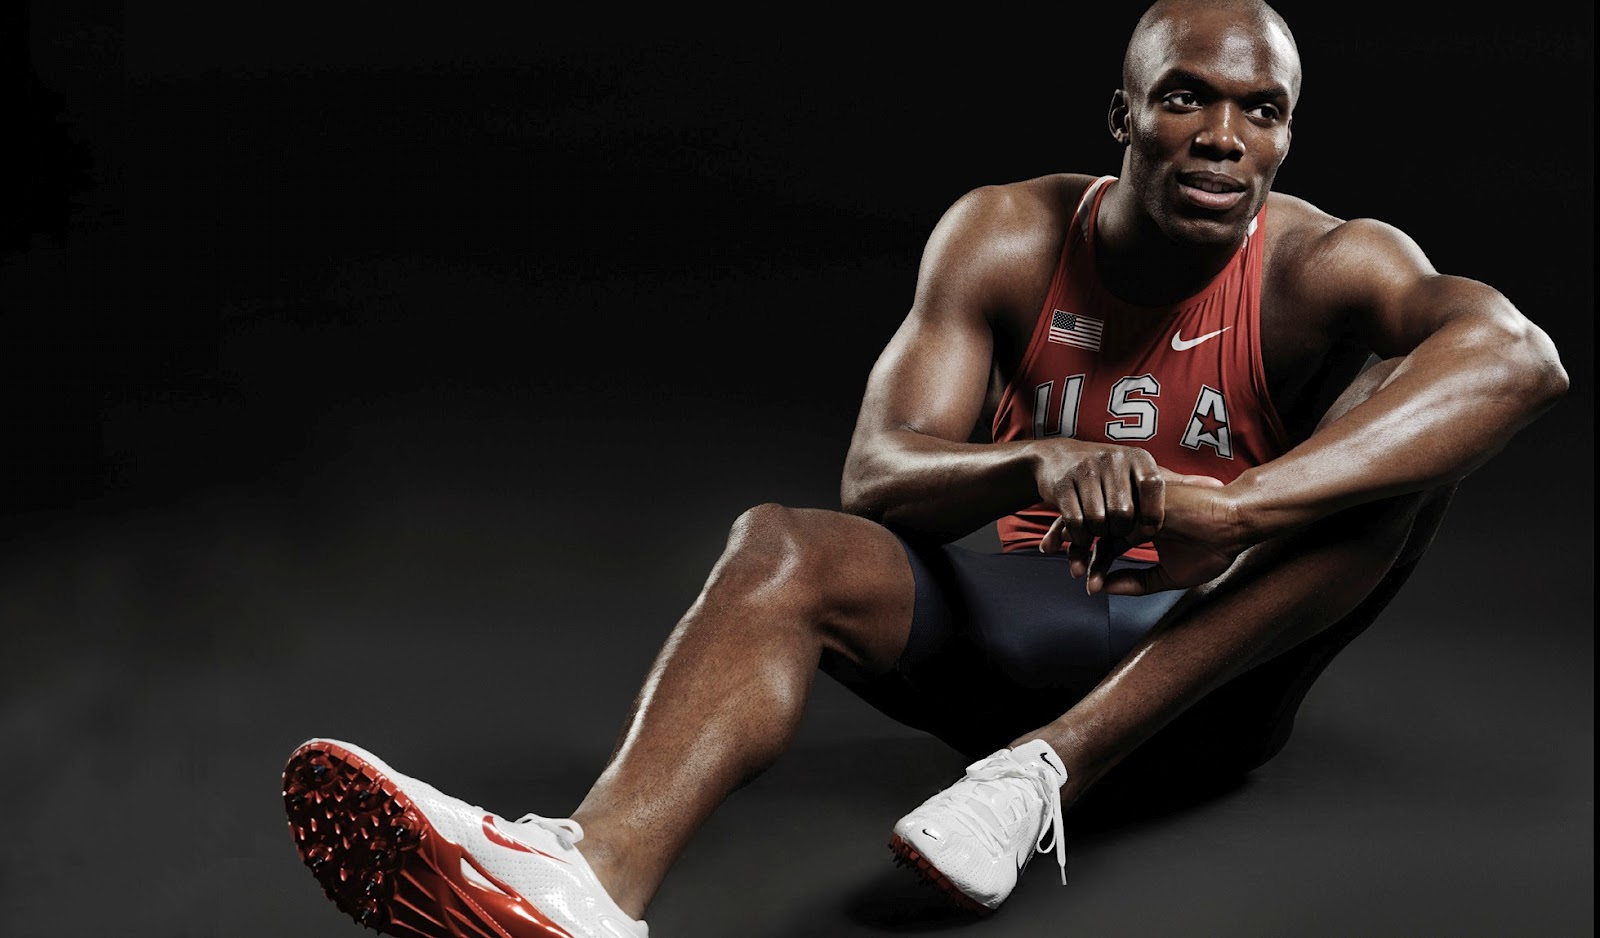 Usa Track And Field Wallpaper